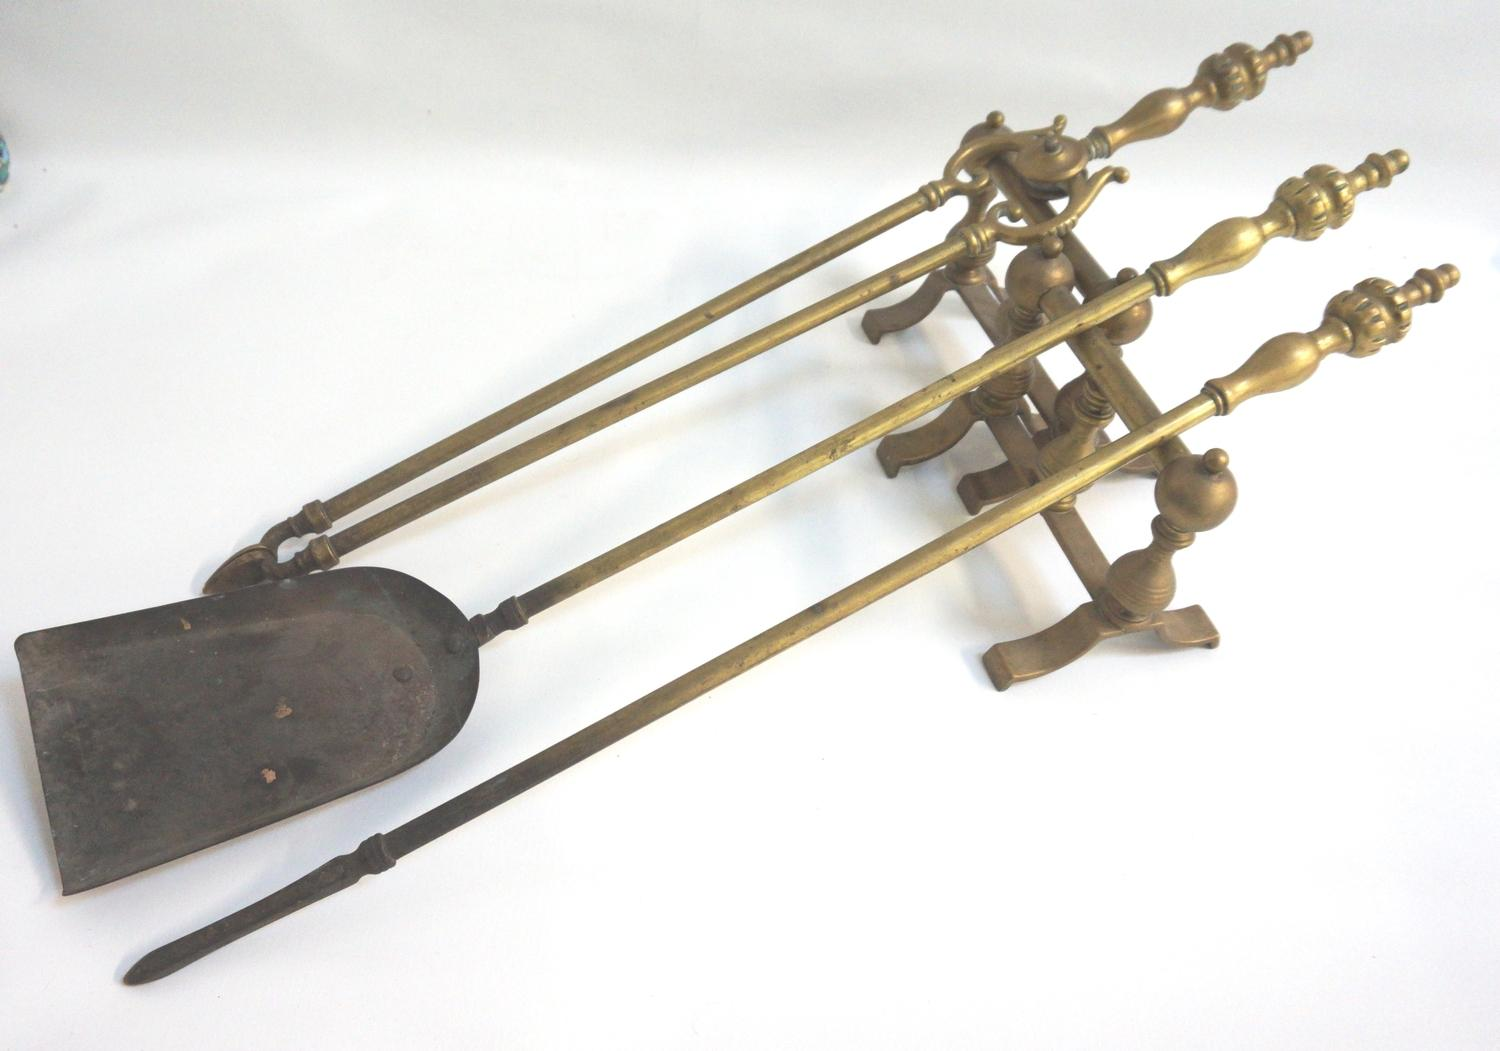 Lot 297 - EARLY 20TH CENTURY BRASS FIRE TOOLS comprising a shovel, pair of tongs, poker and two andirons